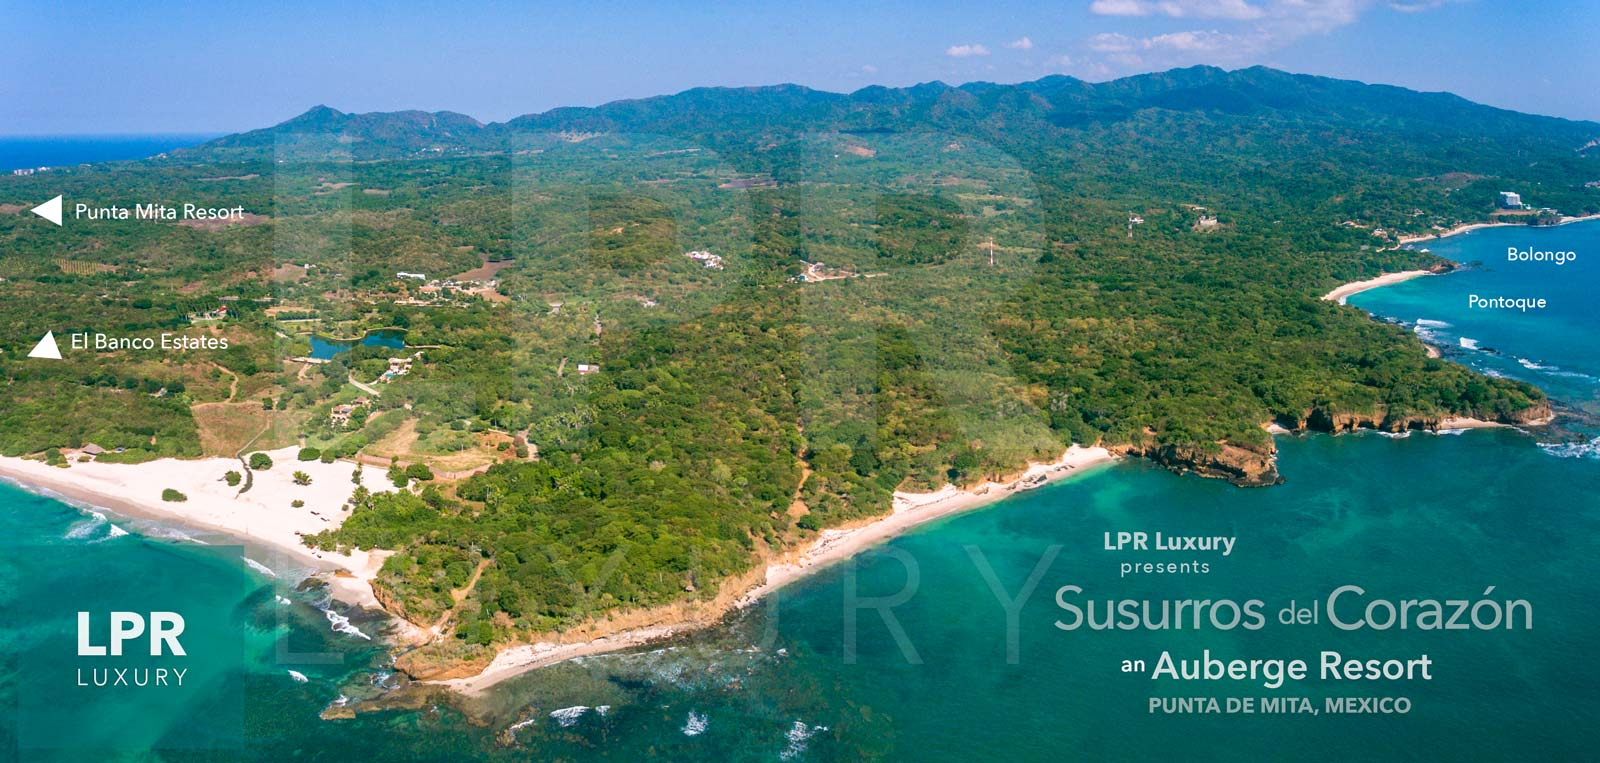 Auberge Punta de Mita - Susurros del Corazon - Luxury oceanfront real estate and vacation rentals.